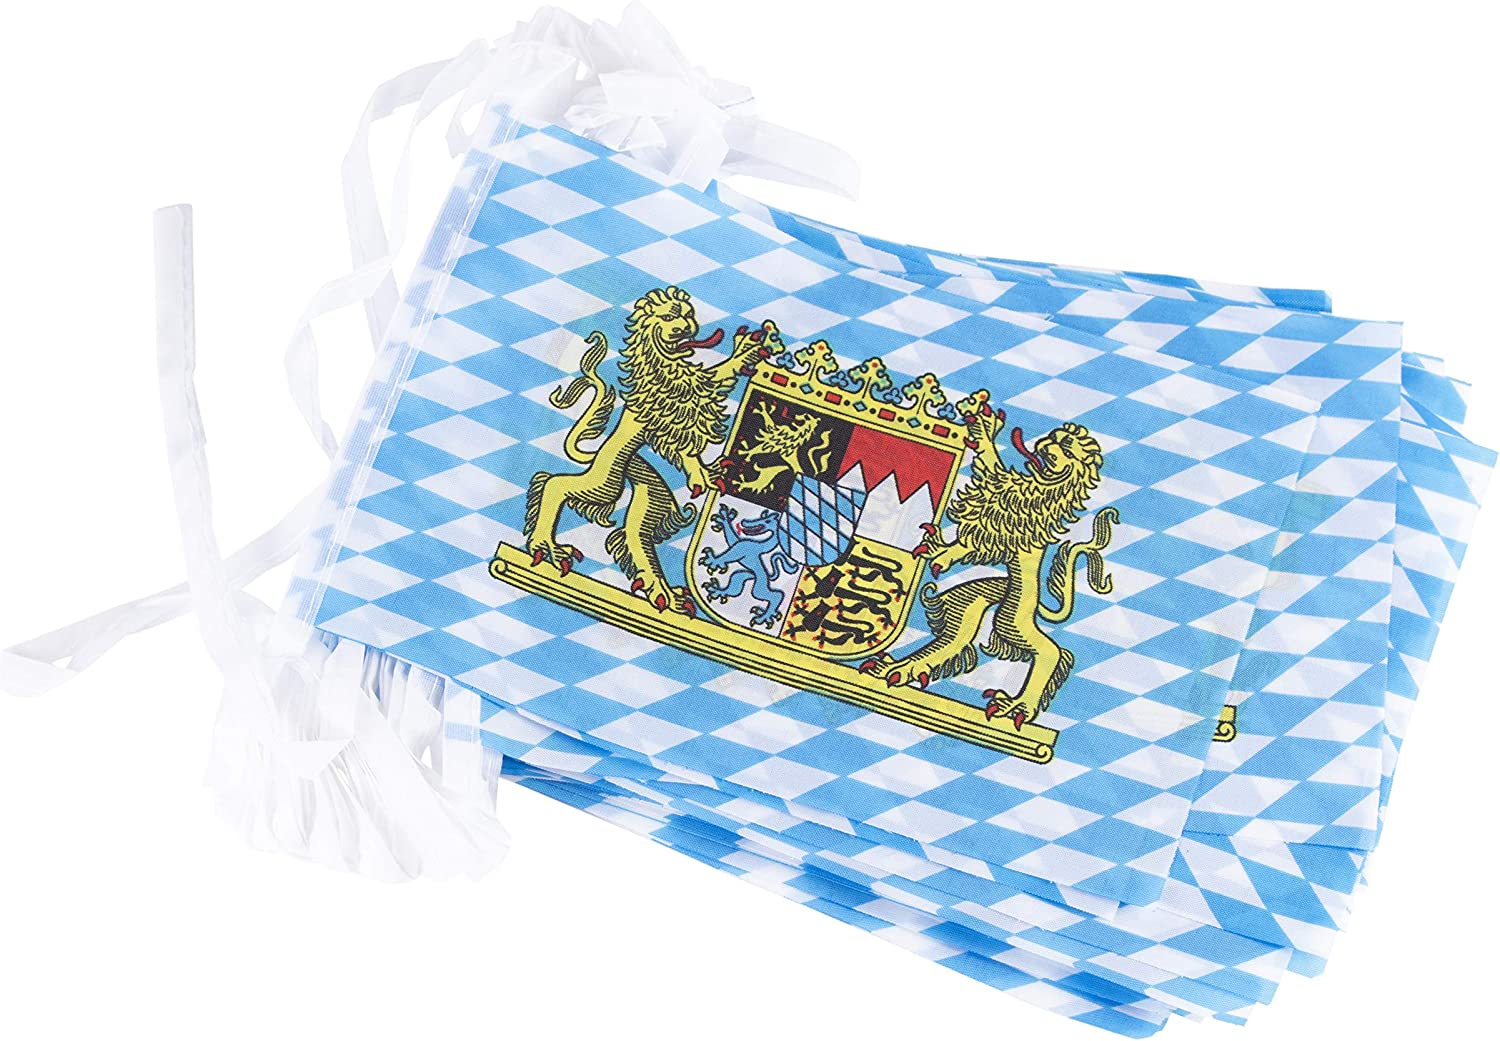 Juvale Bavarian Oktoberfest String Flags - 80-Feet German Theme Party Pennant Banner Hanging Decoration, 100 8 x 5-Inch Flag Pieces